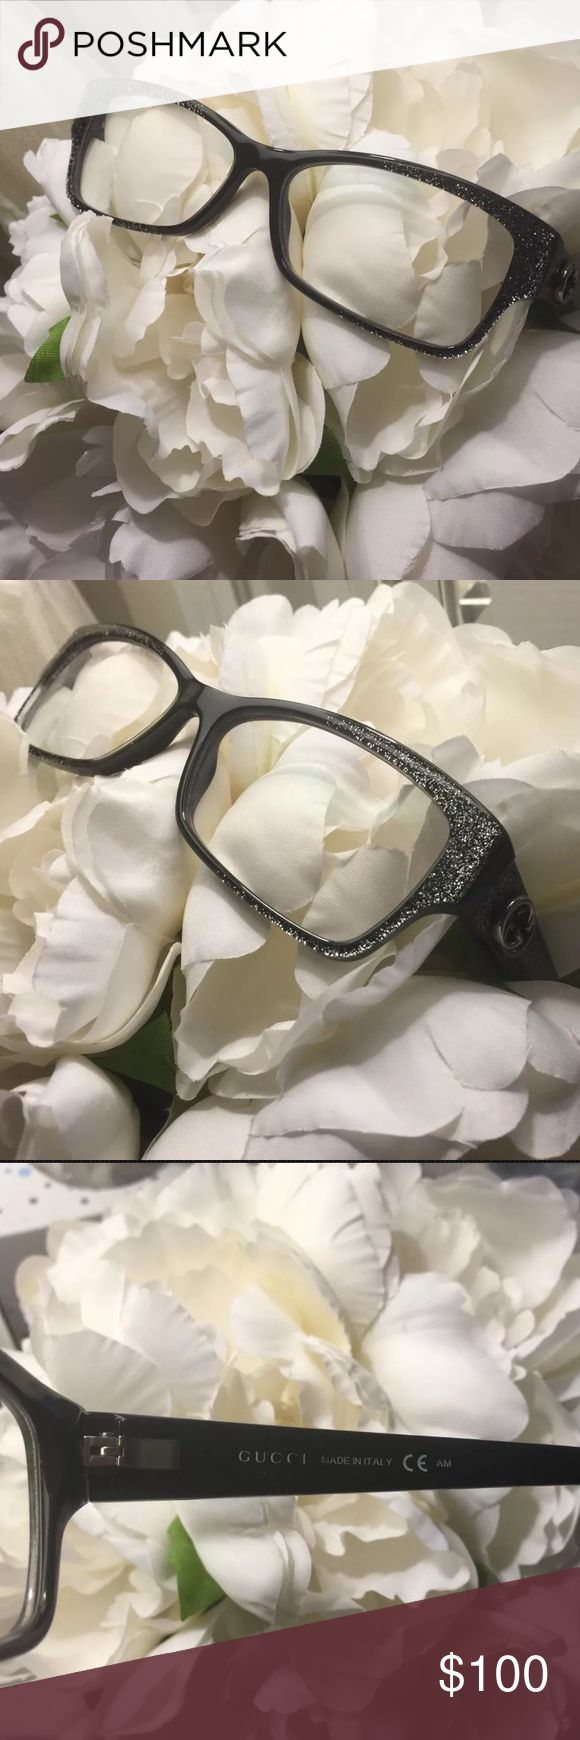 Gucci Glitter Eyeglasses Black with silver glitter Gucci eyeglasses. Only worn a few times. Like new. In excellent condition! Comes with original Gucci eyeglass case. Gucci Accessories Sunglasses